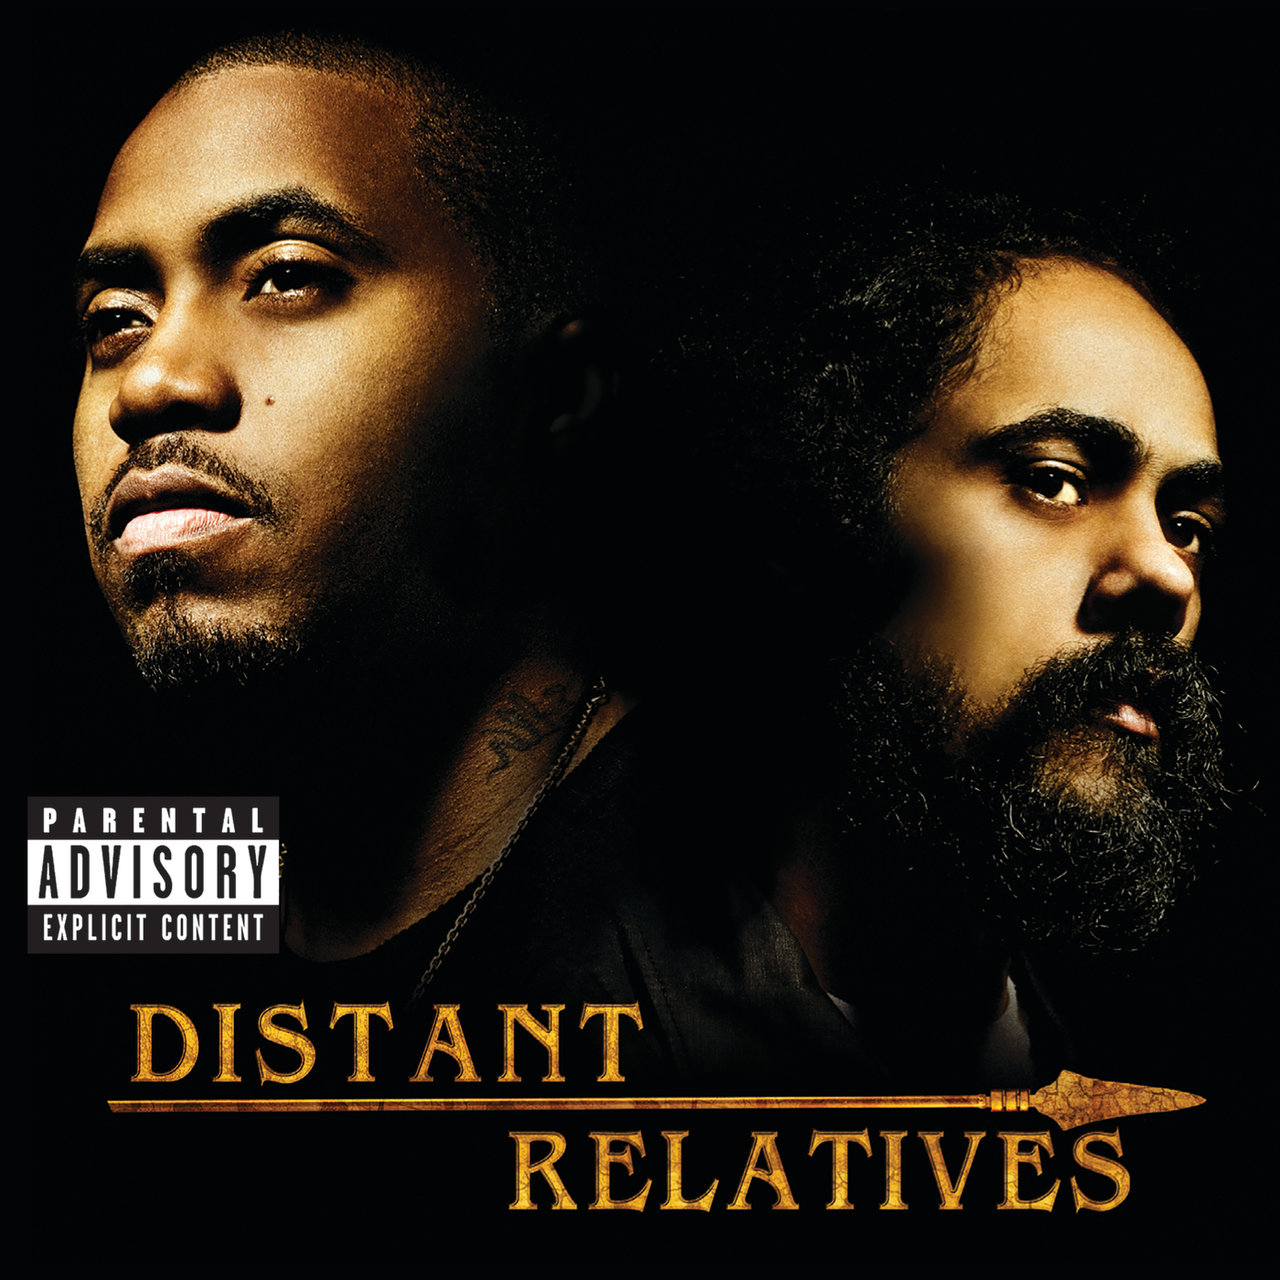 Nas and Damian Marley - Distant Relatives